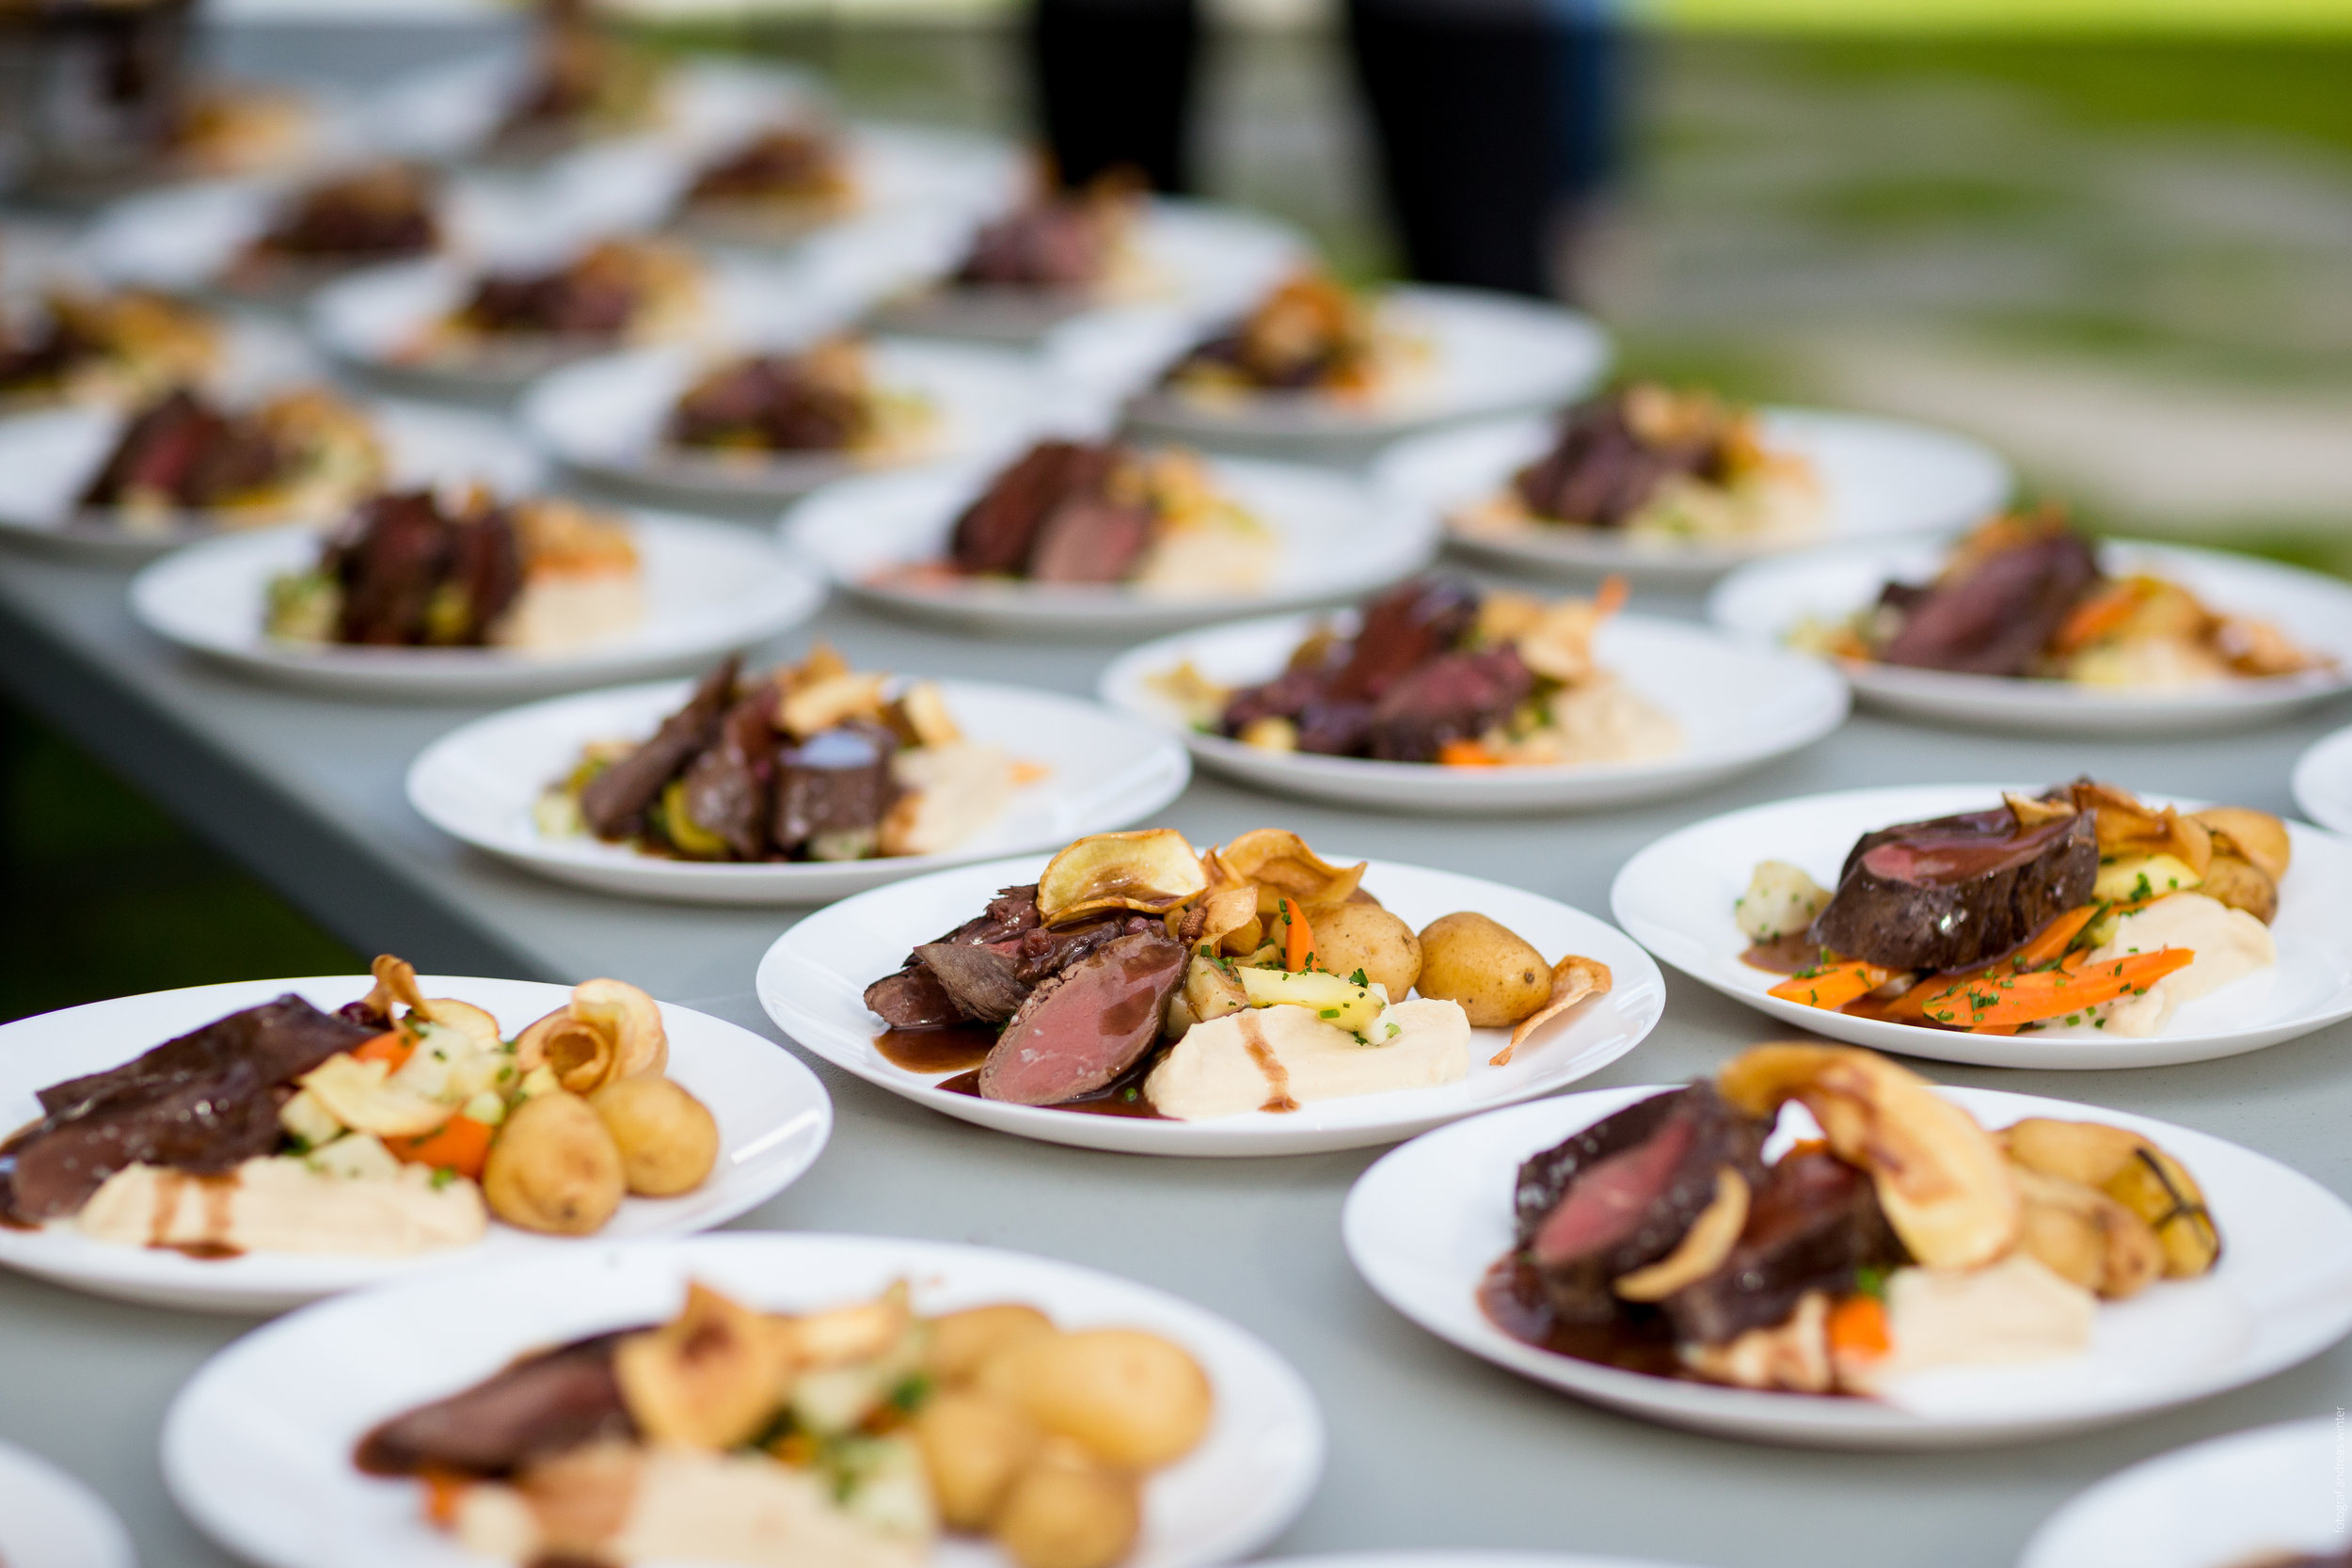 Catering - Molde - Medly - Medlyfood